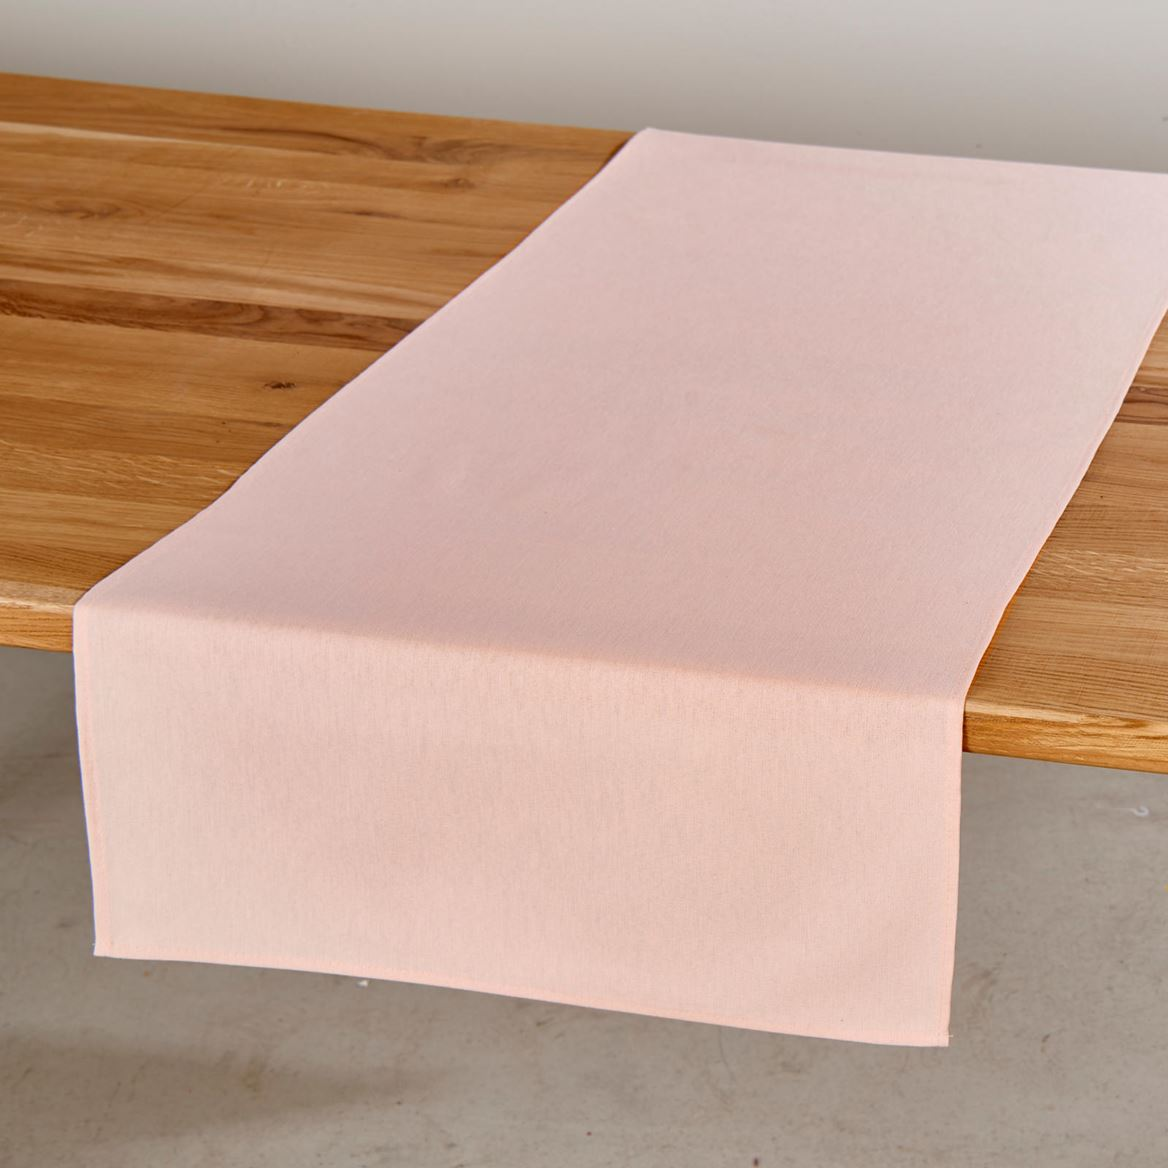 UNILINE Chemin de table rose clair Larg. 45 x Long. 138 cm_uniline-chemin-de-table-rose-clair-larg--45-x-long--138-cm